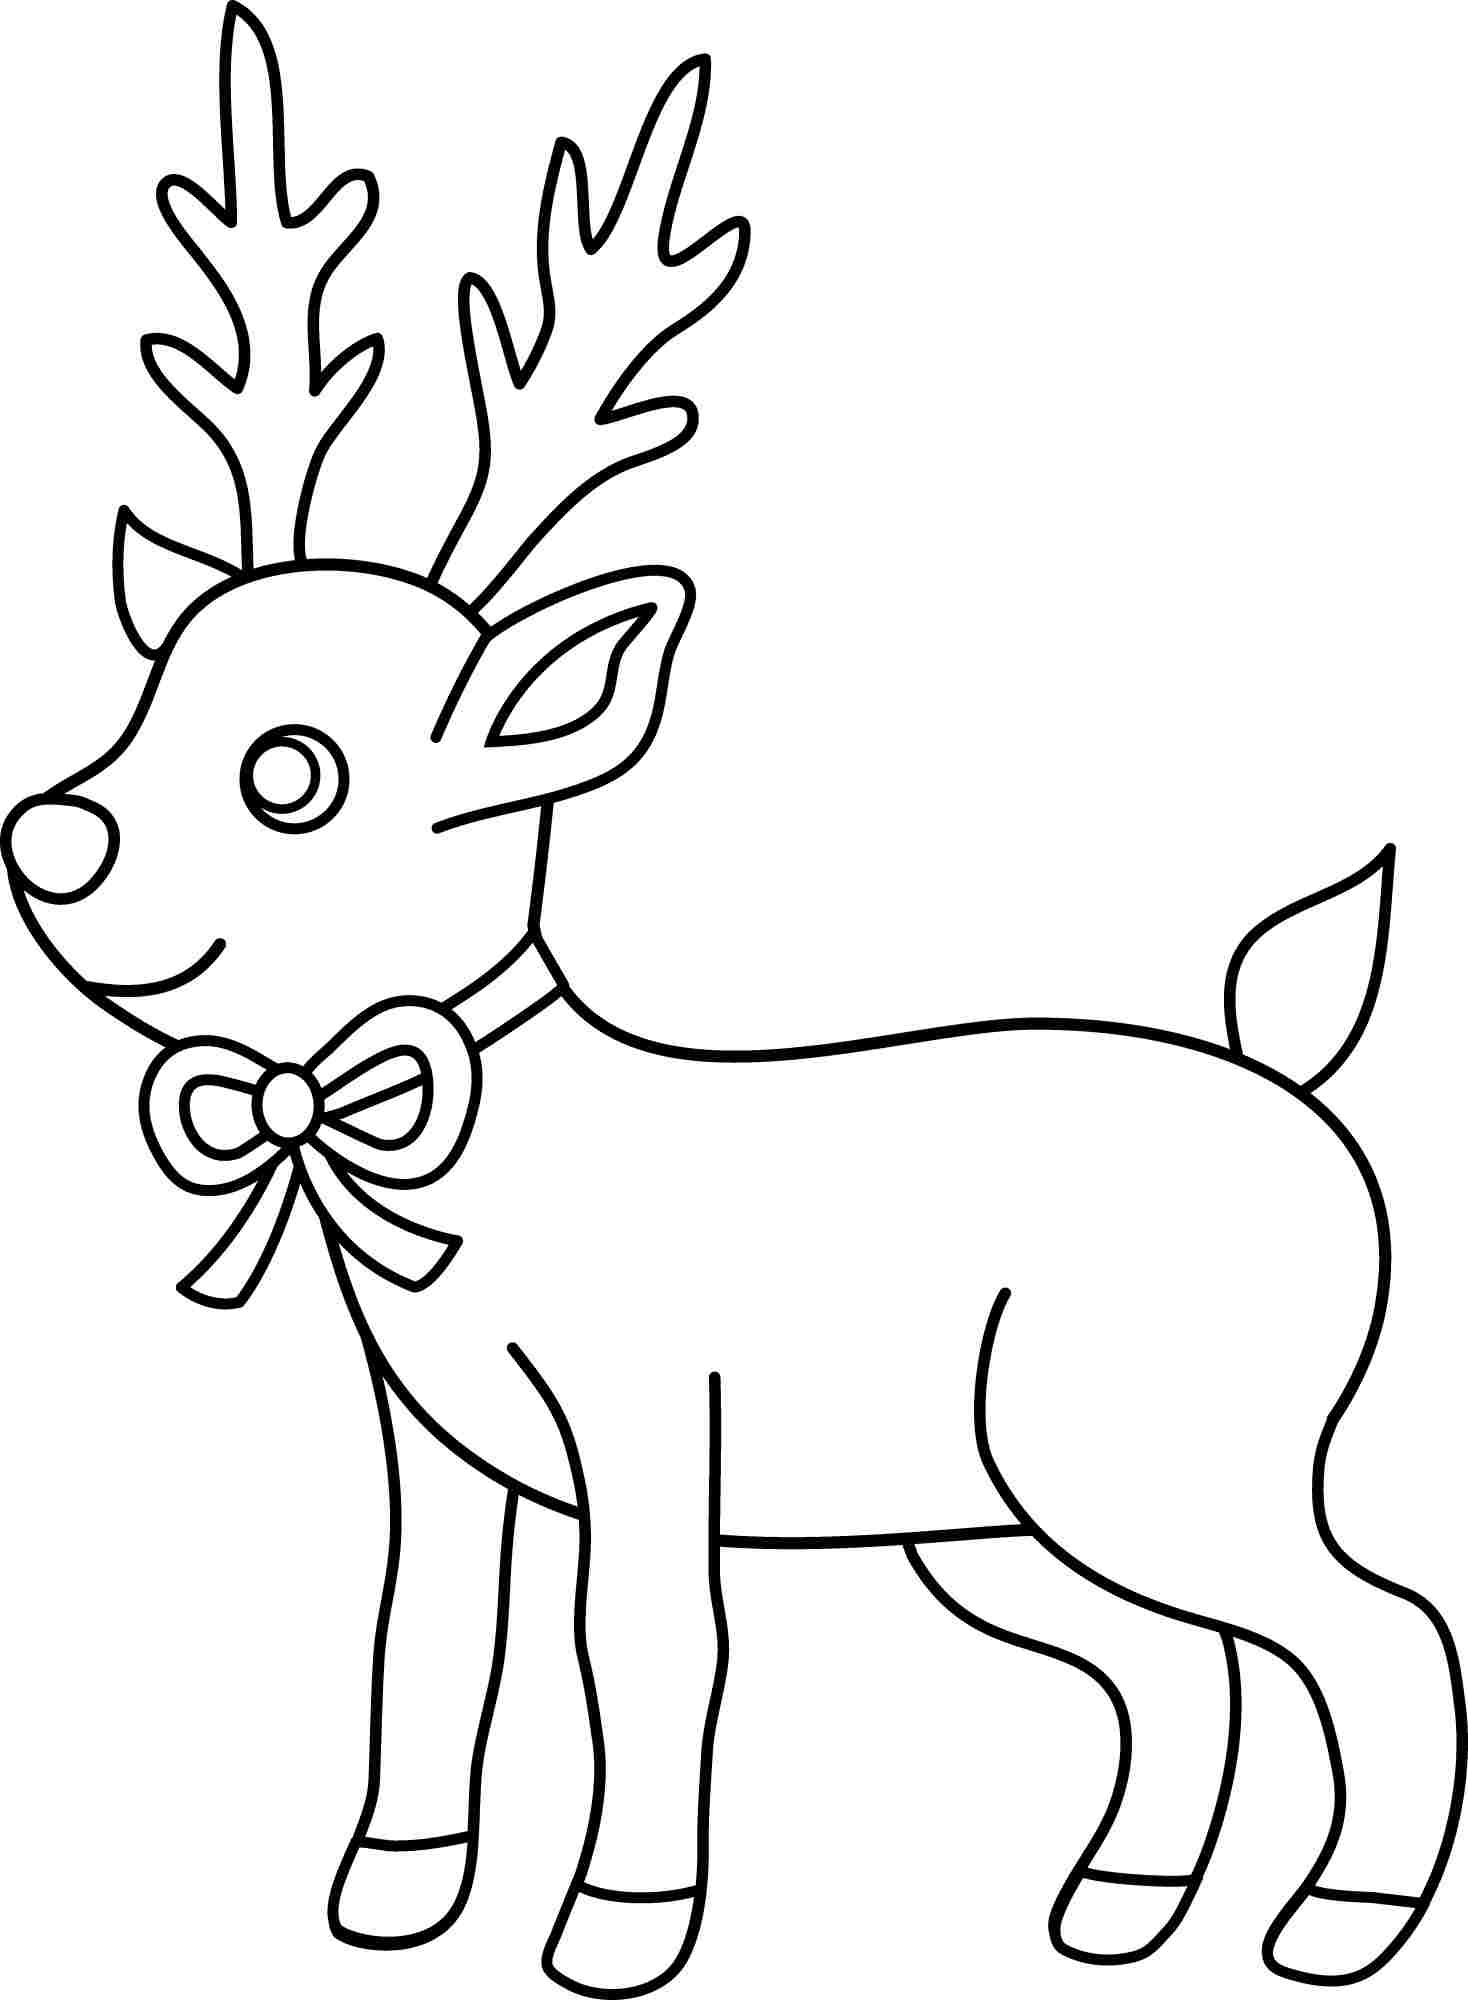 Drawn reindeer color Version  Tumblr For Preschoolerjpg